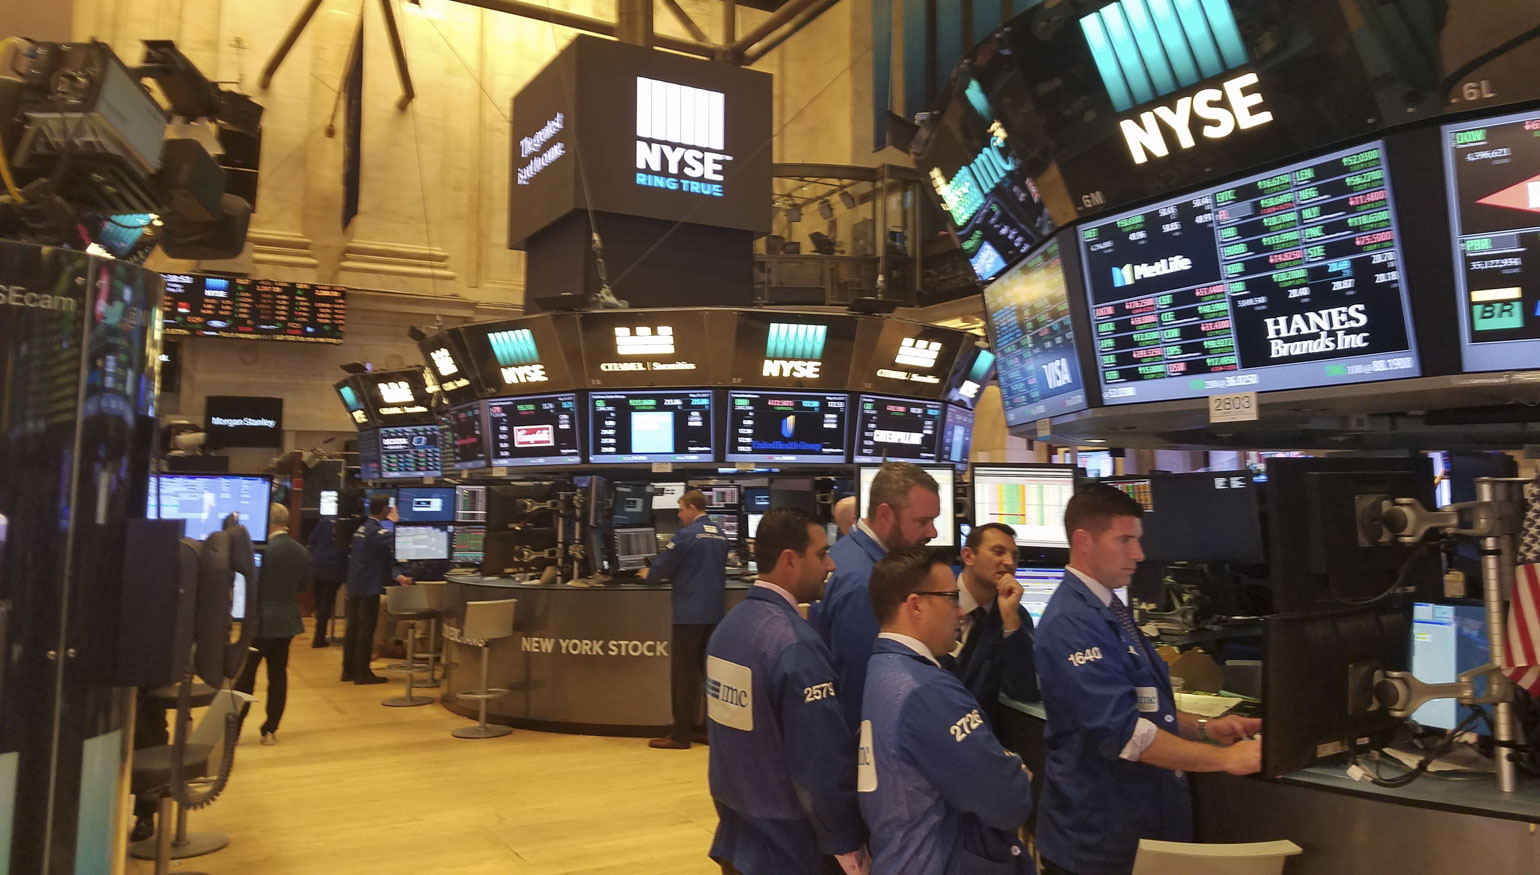 w-m-weekend--nyse-trading-floor-photo0.jpg